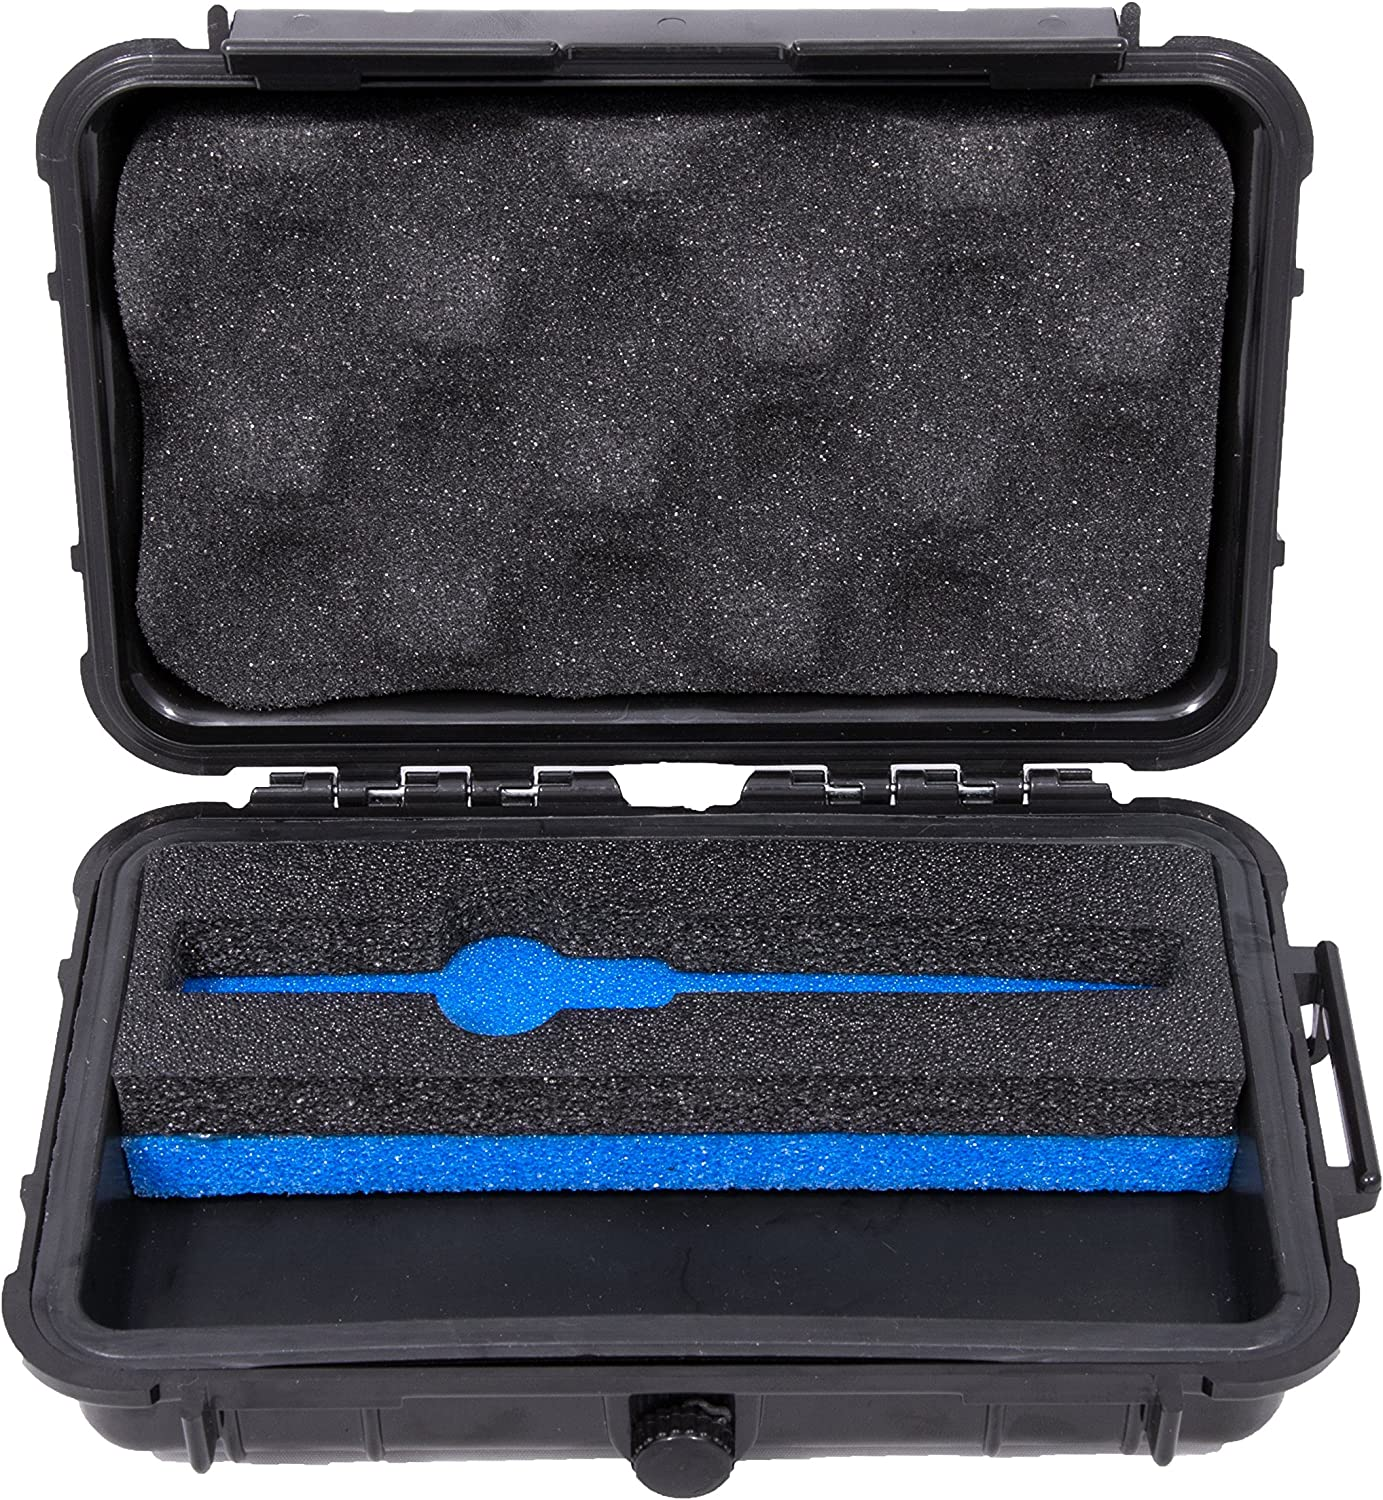 CLOUD/TEN Smell Proof Carry Case For V2 Pro Series 3x Portable Pen and Accessories Such as Cartridges, Coils, Atomizers, Charge Adapter and More - Includes FREE HERB CANISTER and GRINDER